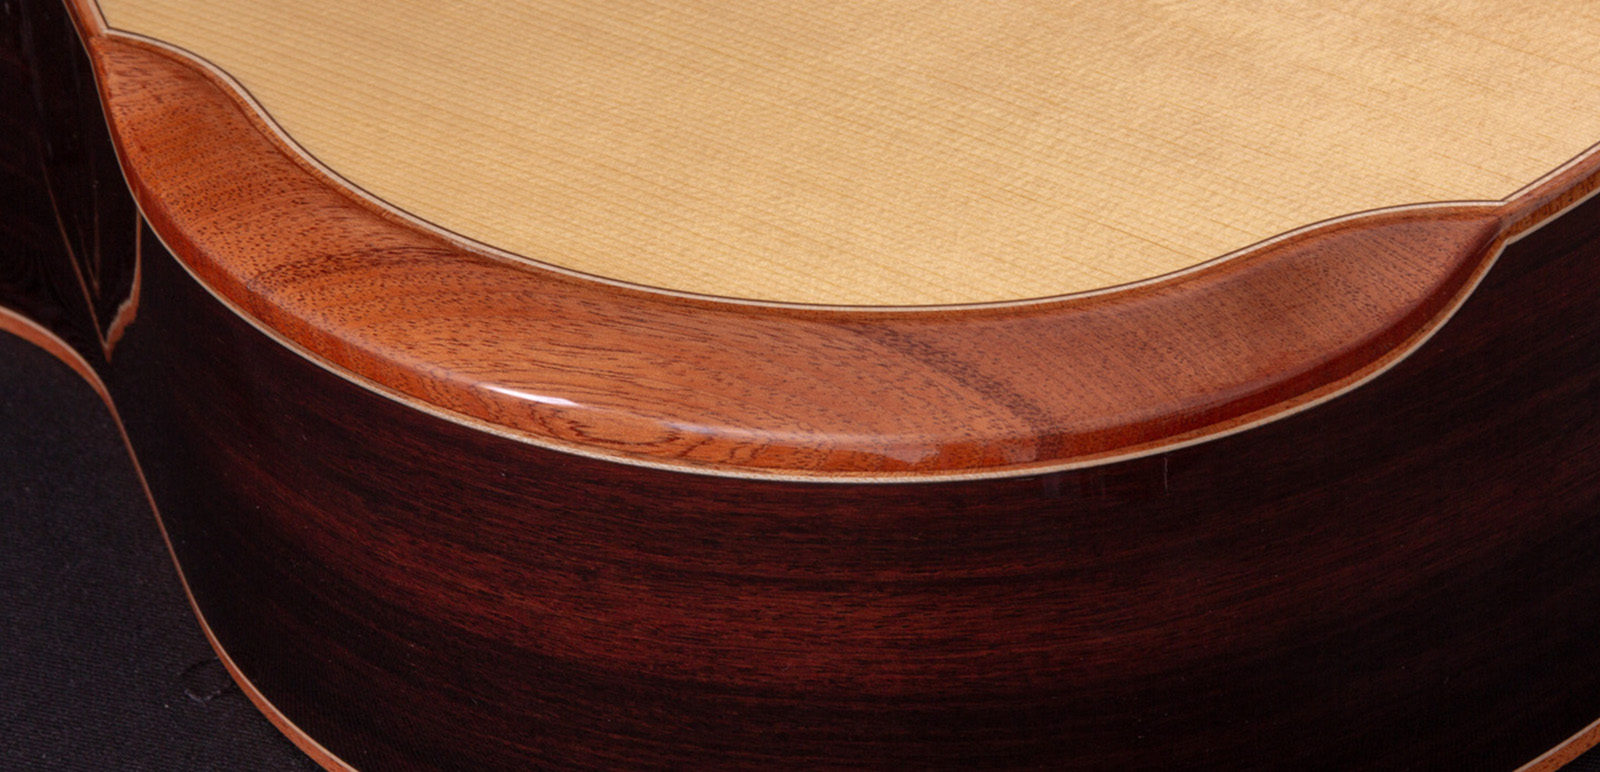 CLOSE UP OF THE COMFORT BEVEL CUT ON COMFORT SERIES GUITARS